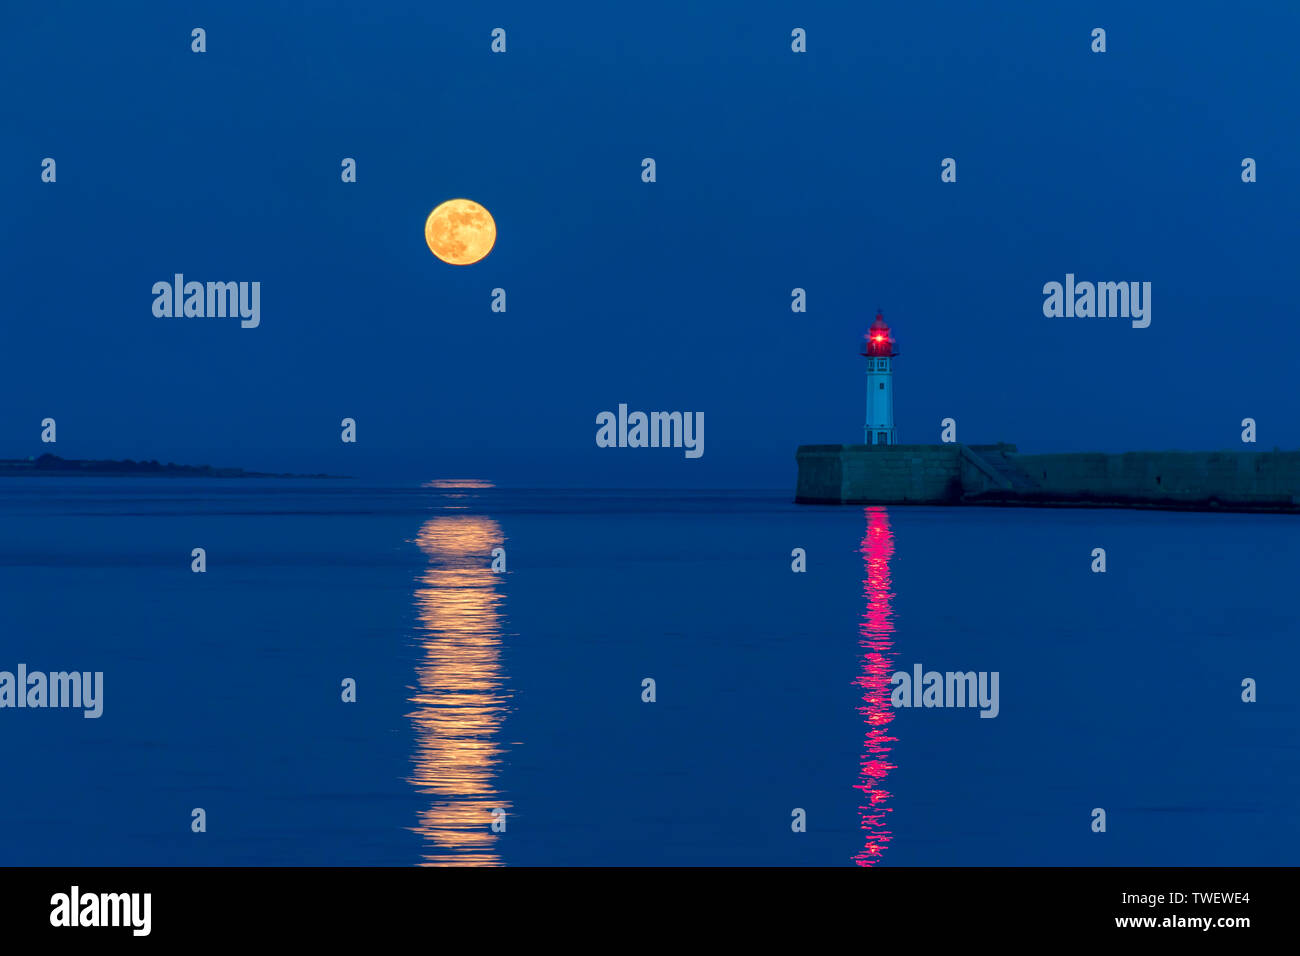 Full moon reflected next to the lighthouse in the water of the port of Almeria. - Stock Image